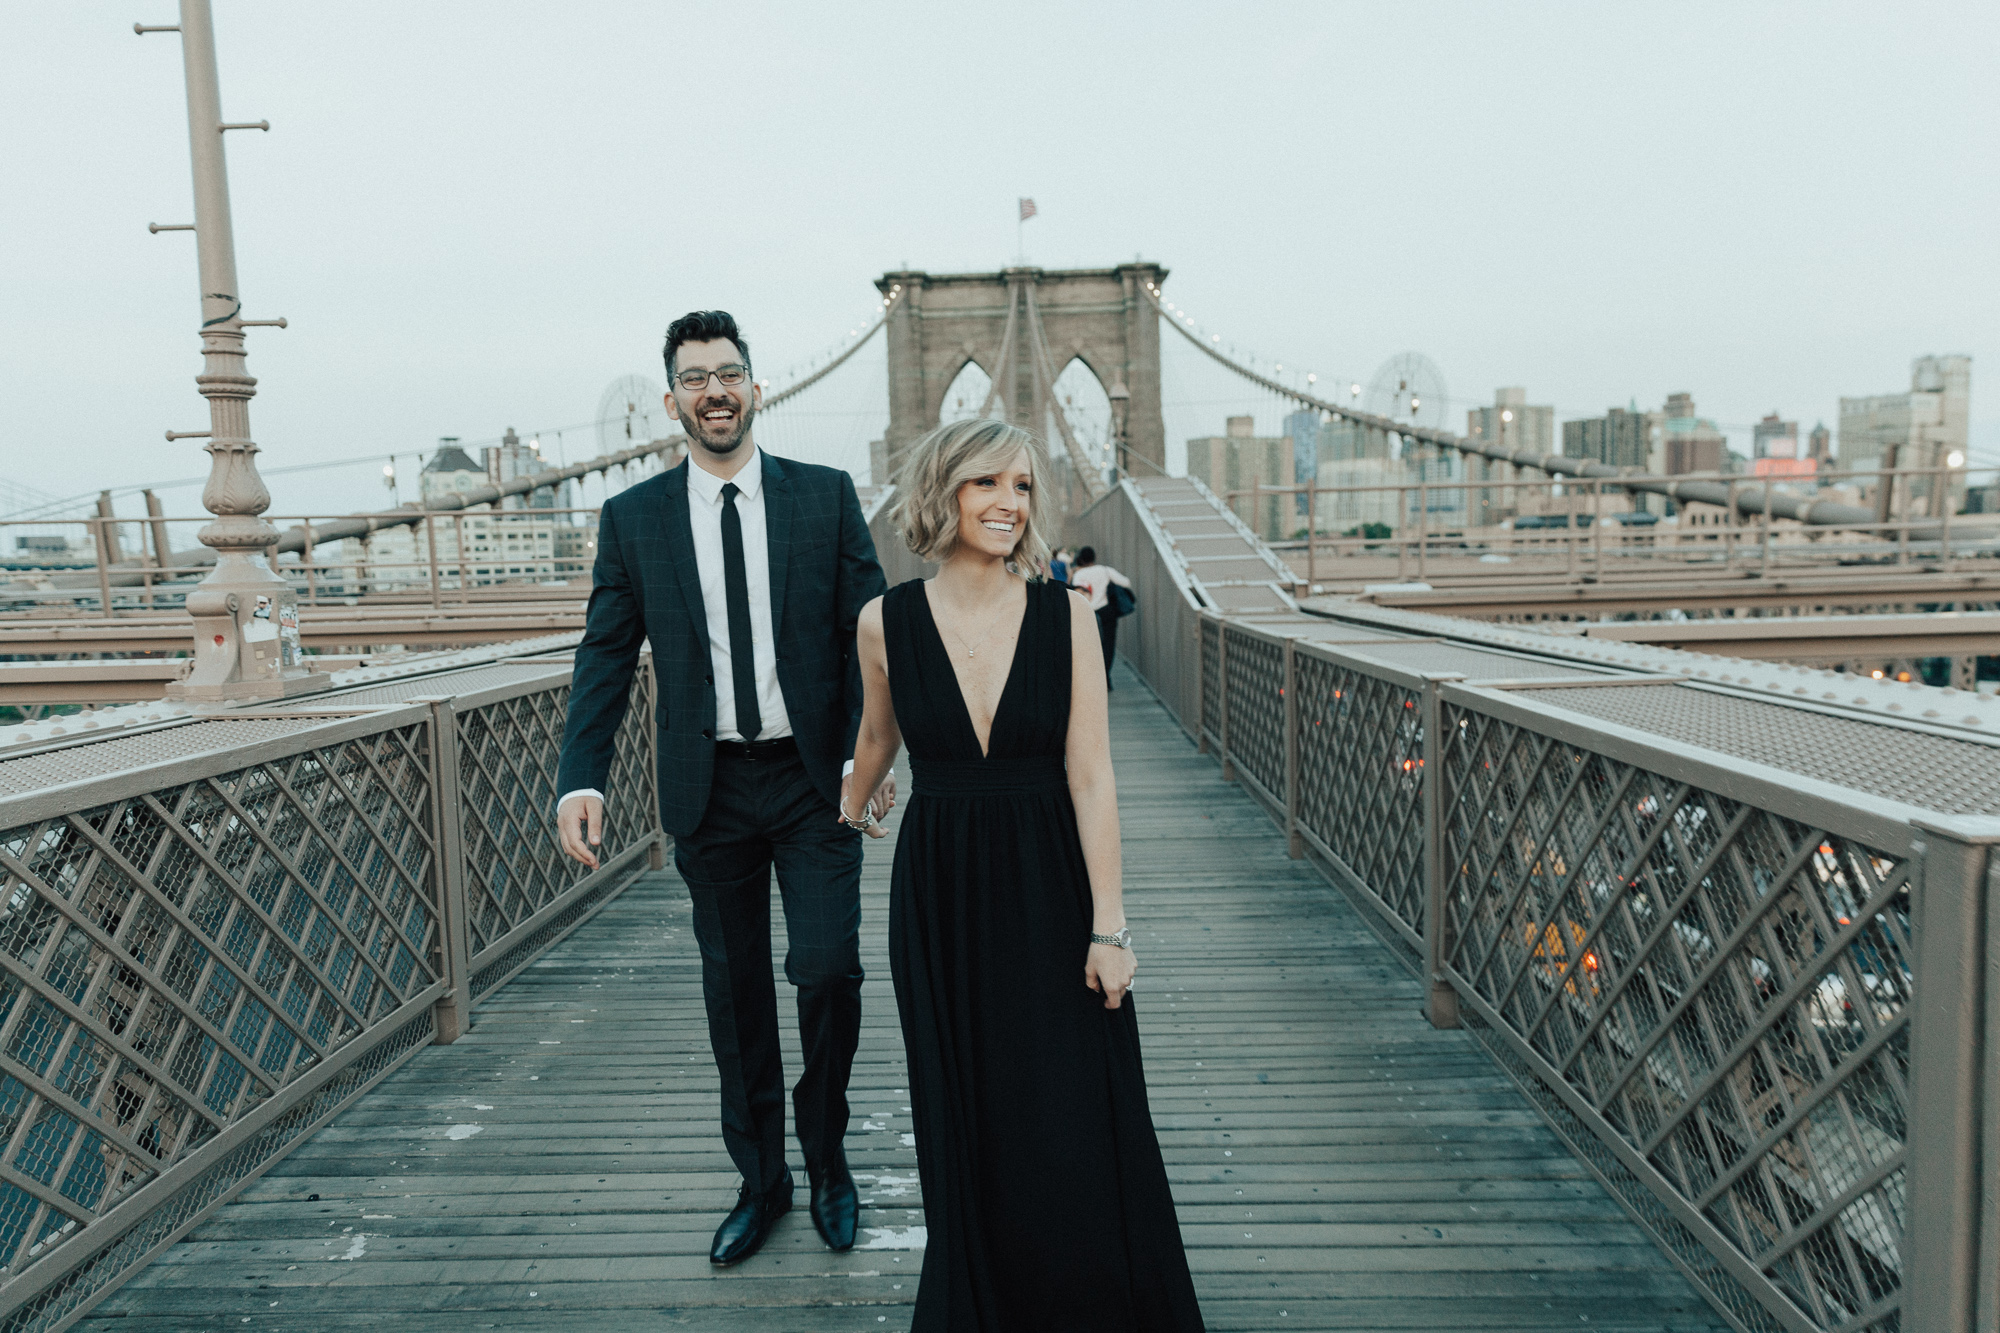 brooklyn_nyc_engagement_photography-80-of-83.jpg